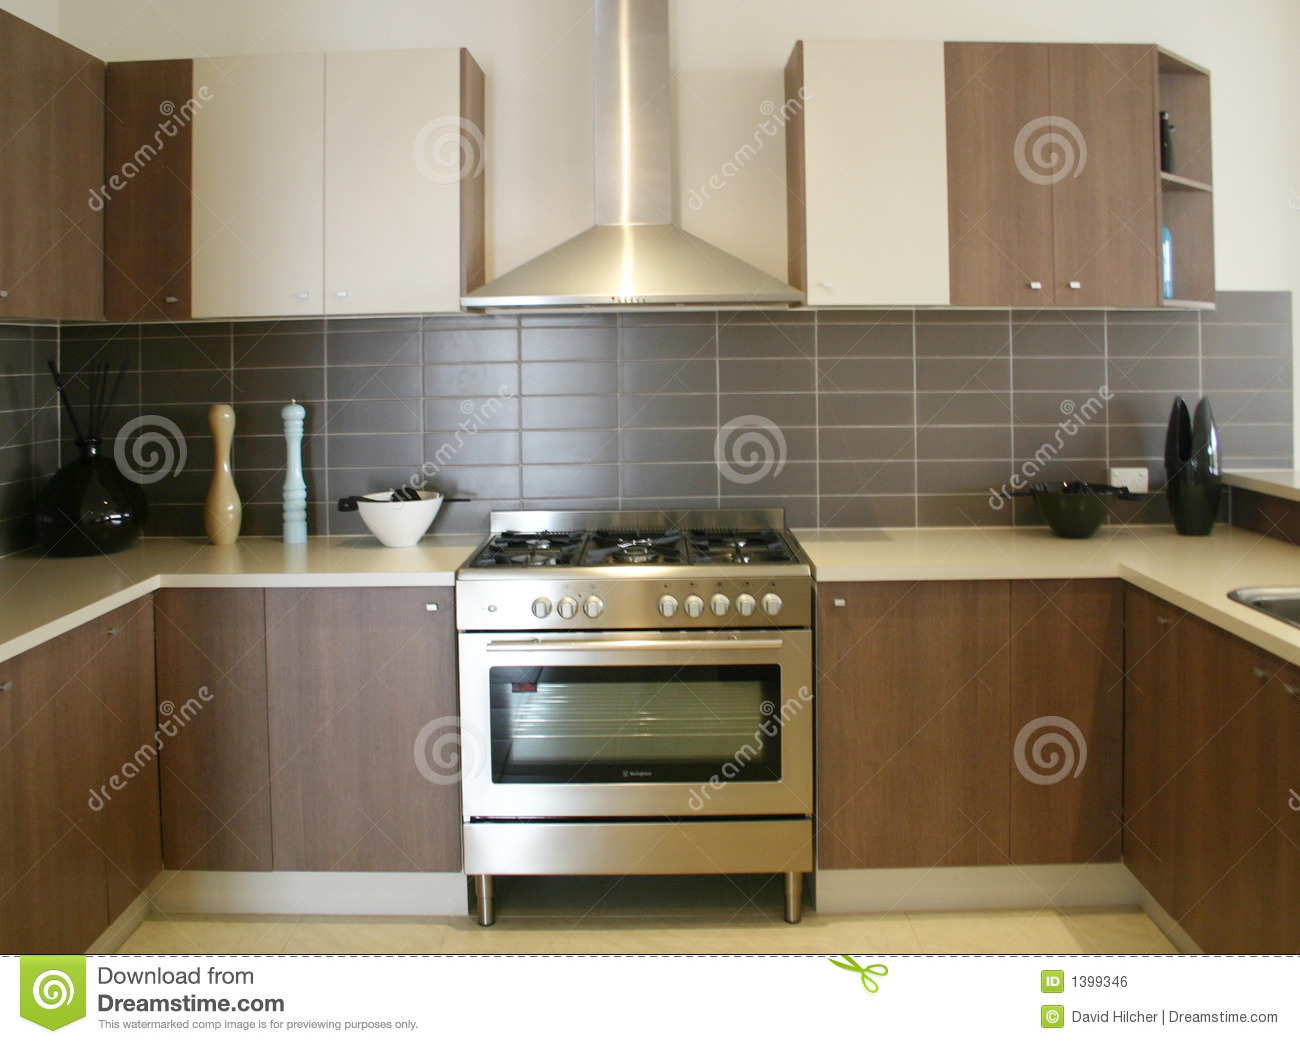 Download Home Interior Natural Light Stock Photo - Image of brown, colourful: 1399346